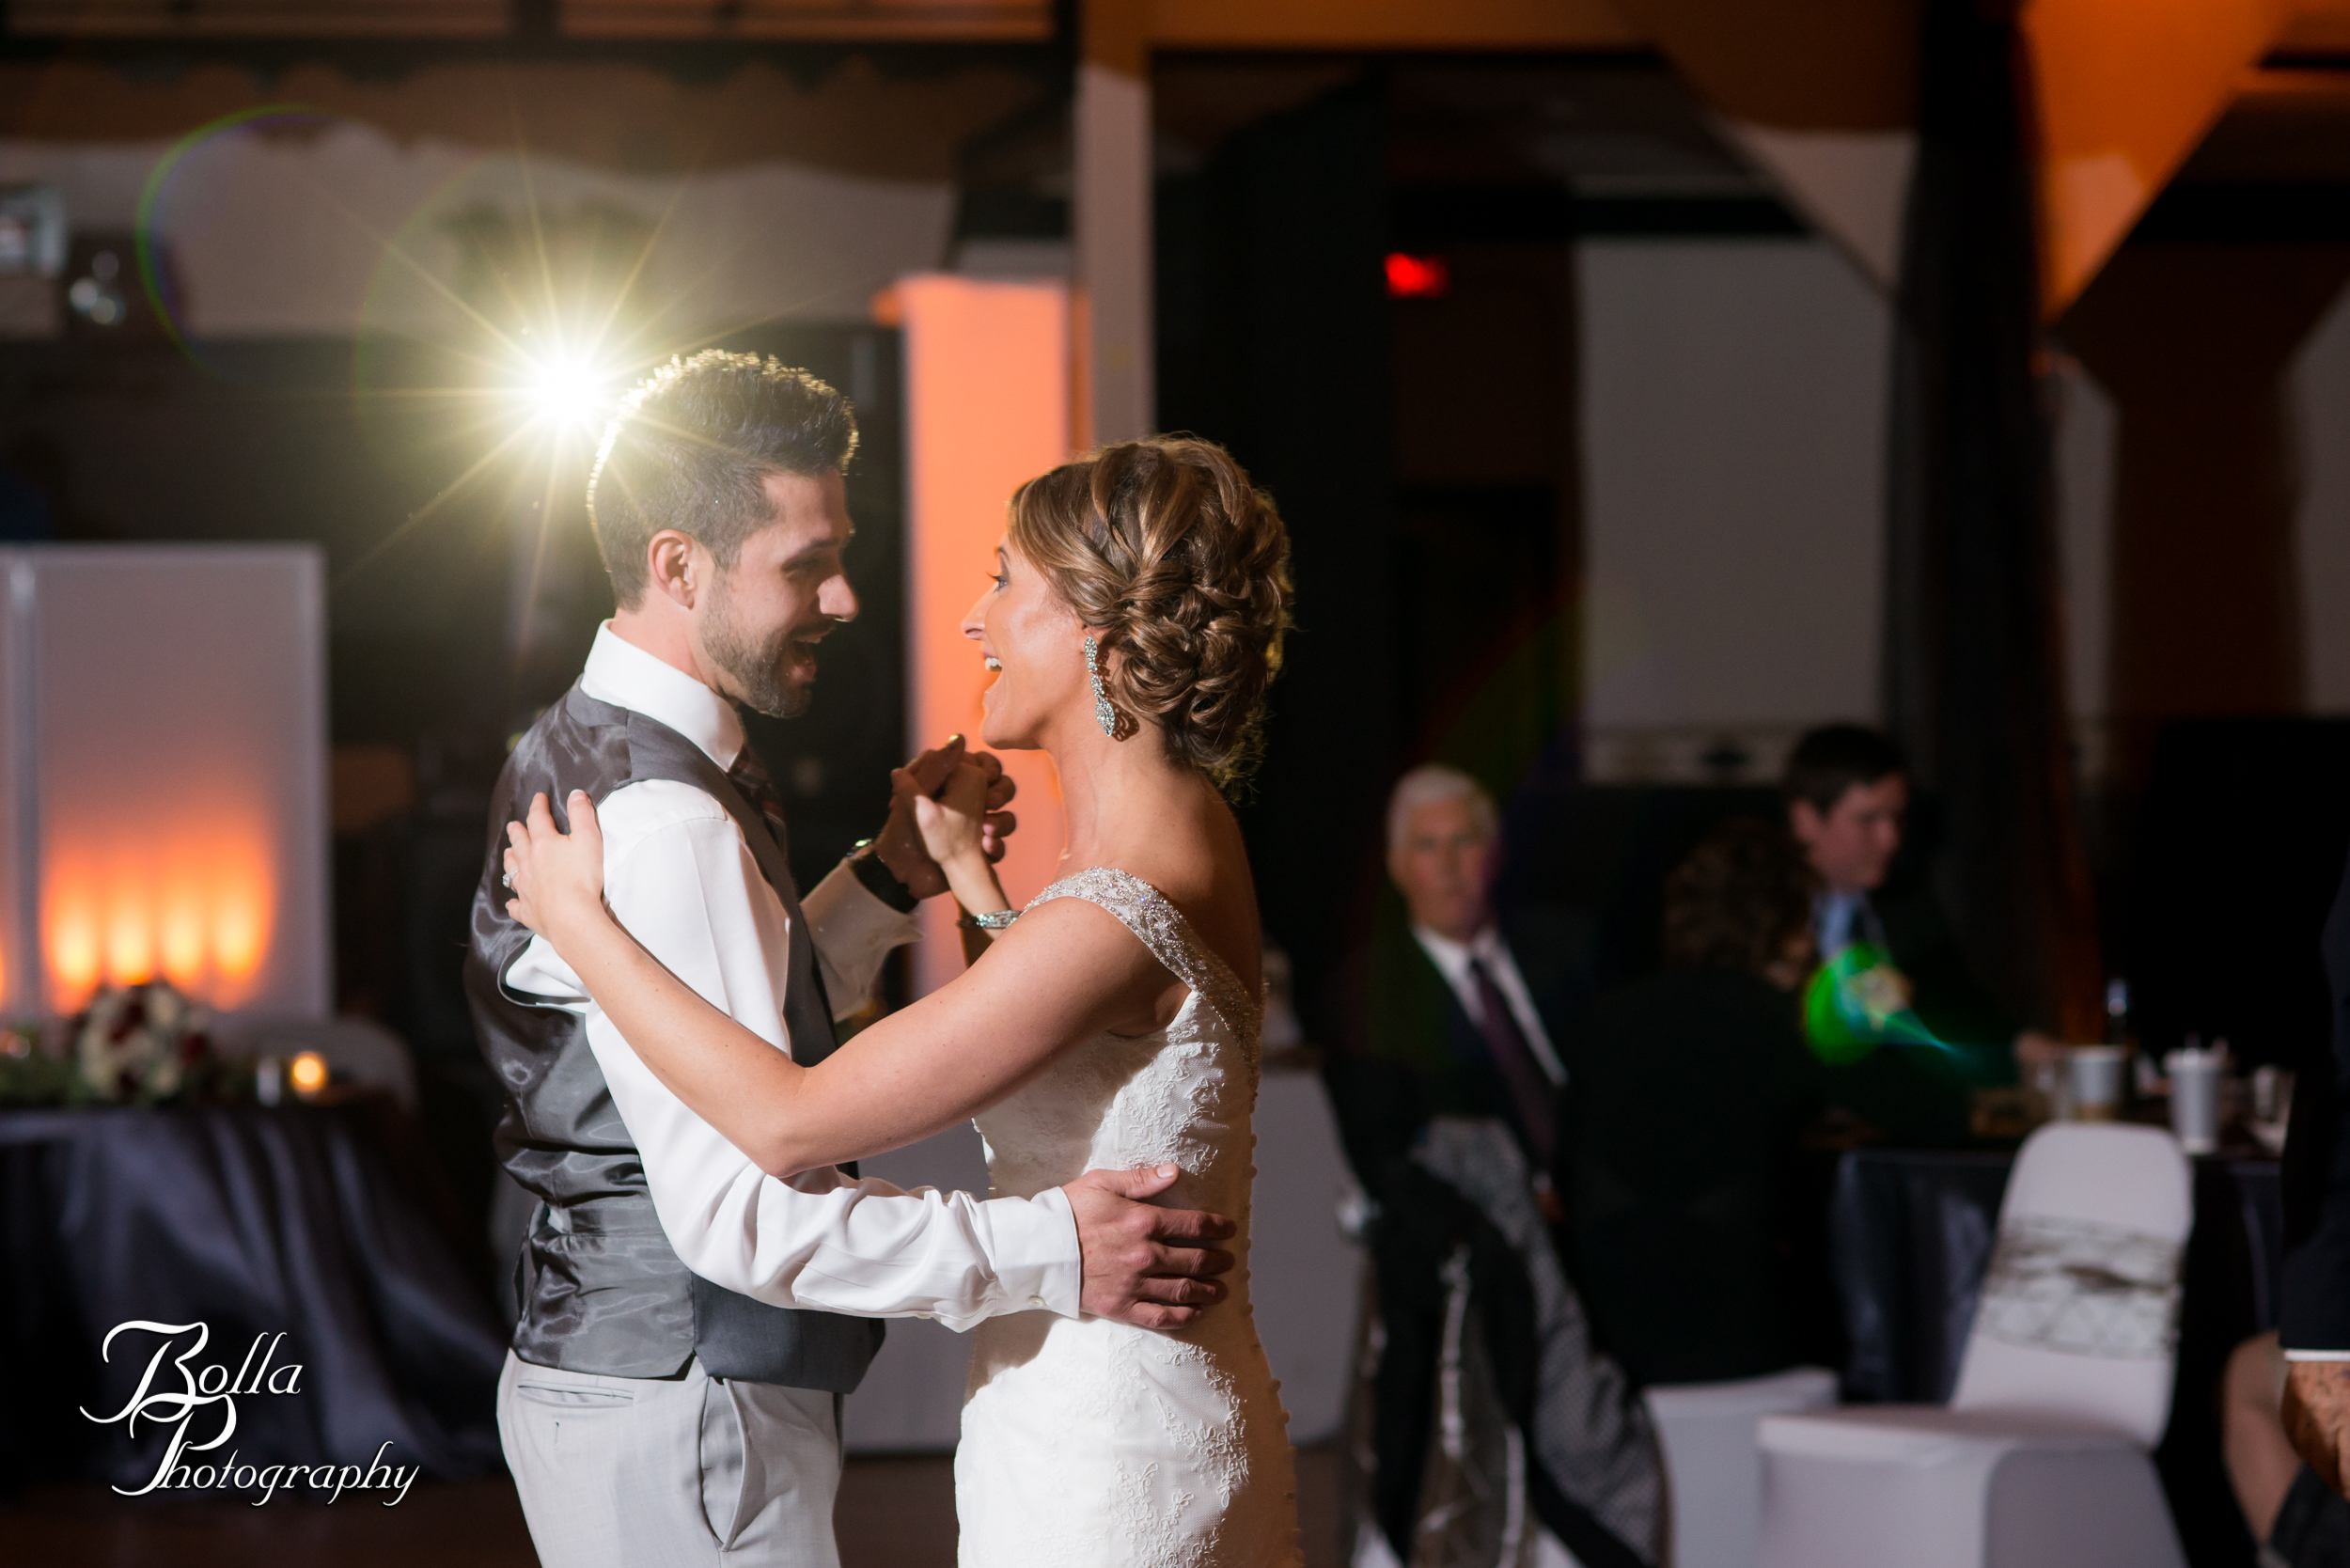 Bolla_photography_edwardsville_wedding_photographer_st_louis_weddings_highland_Allen_Warren_winter_red-0397.jpg